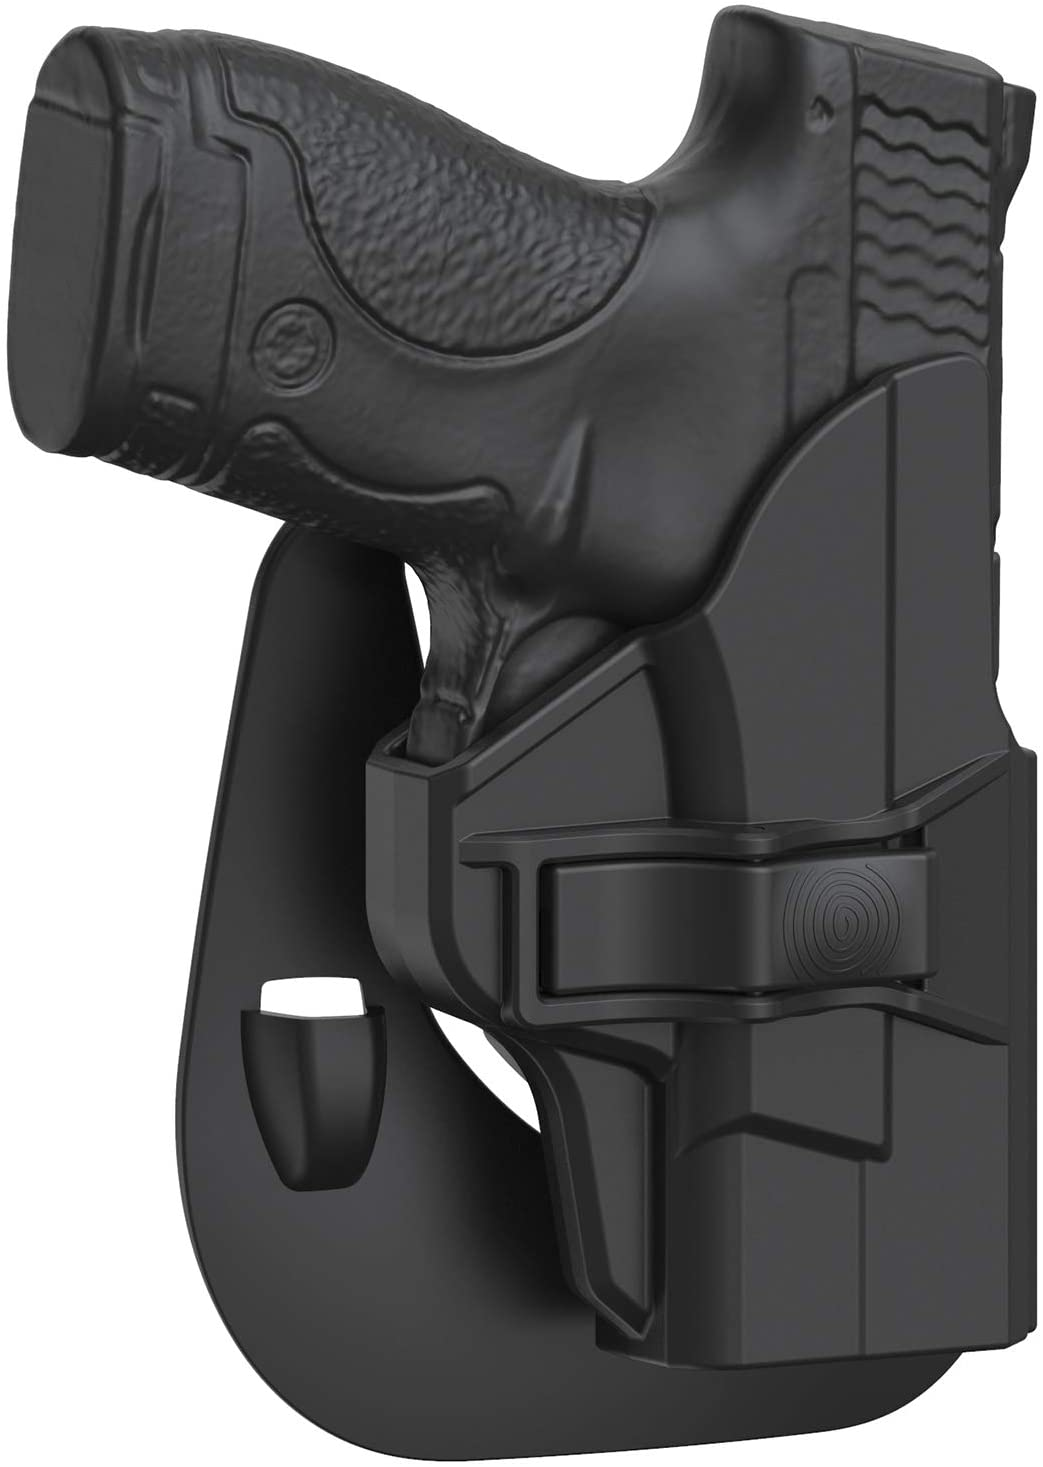 M&P Shield 9mm OWB Paddle Holster